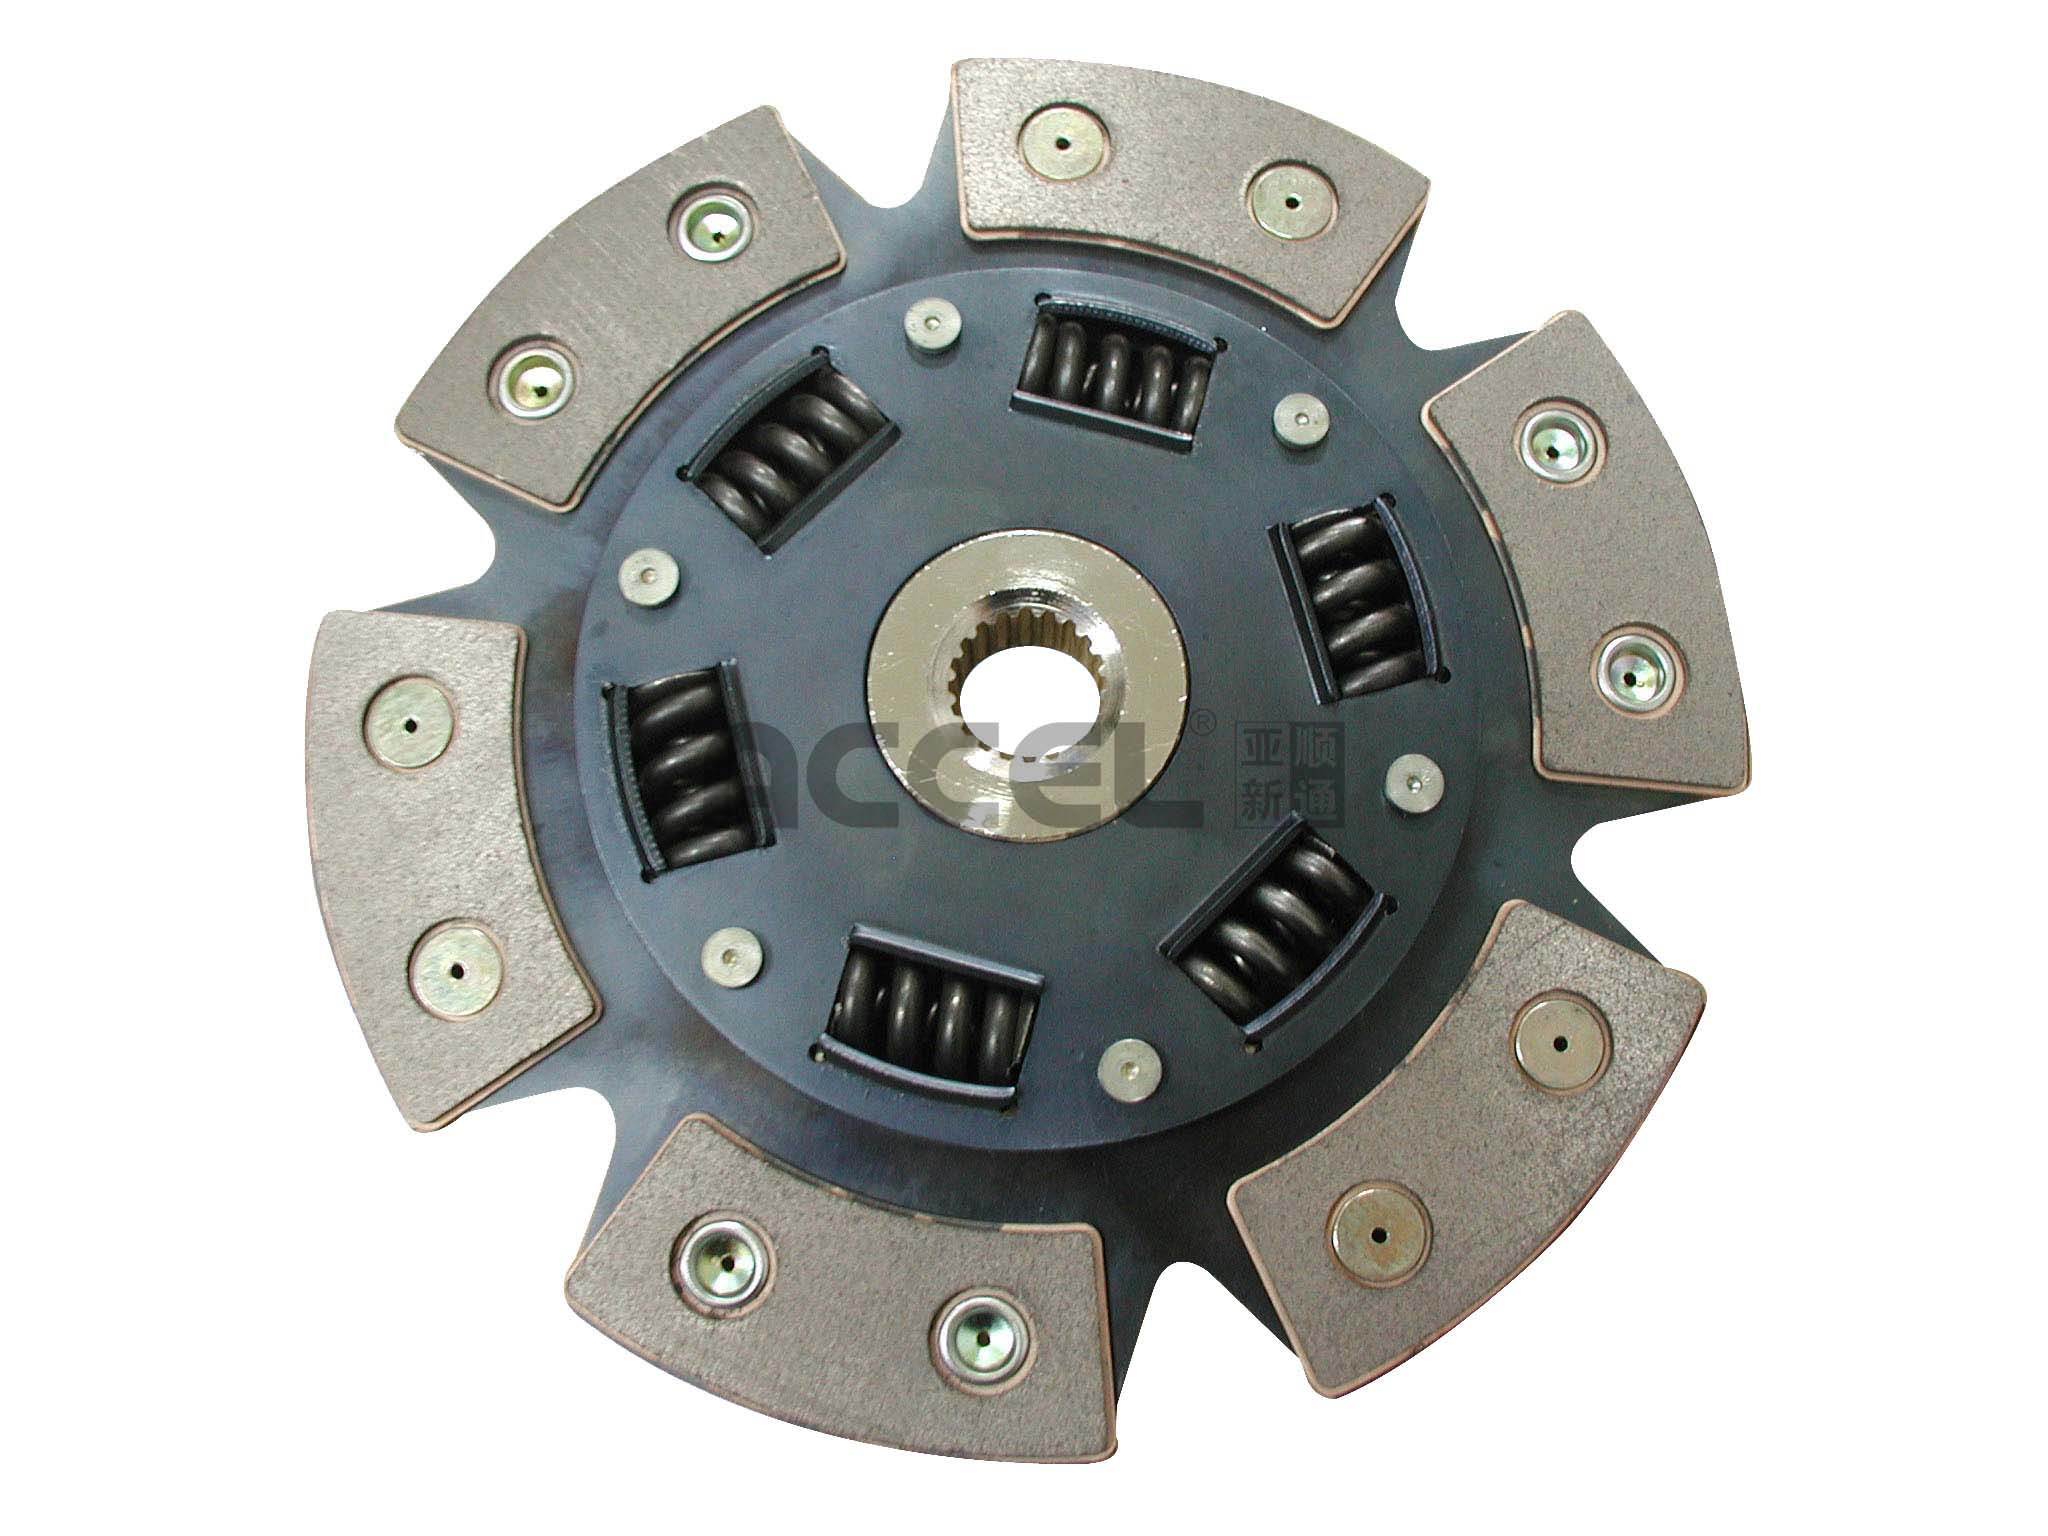 Clutch Disc/OE:6P/212*20*22/ARC-011T/RACING CAR/CL1368